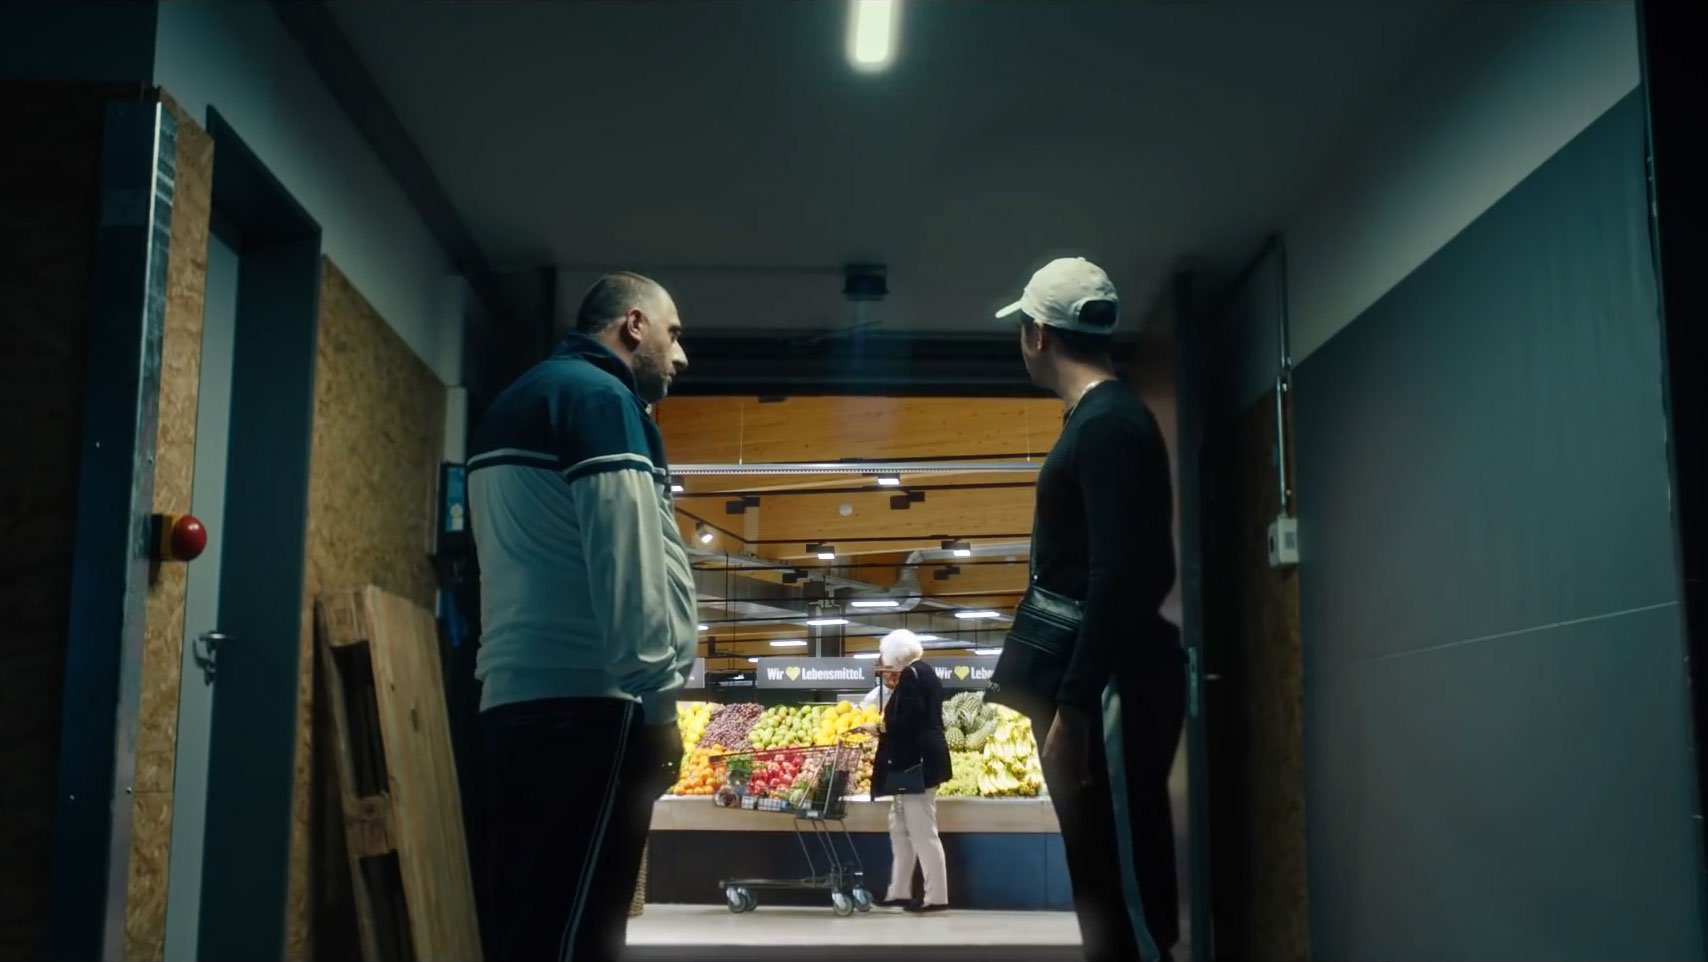 Two men looking into a Supermarket